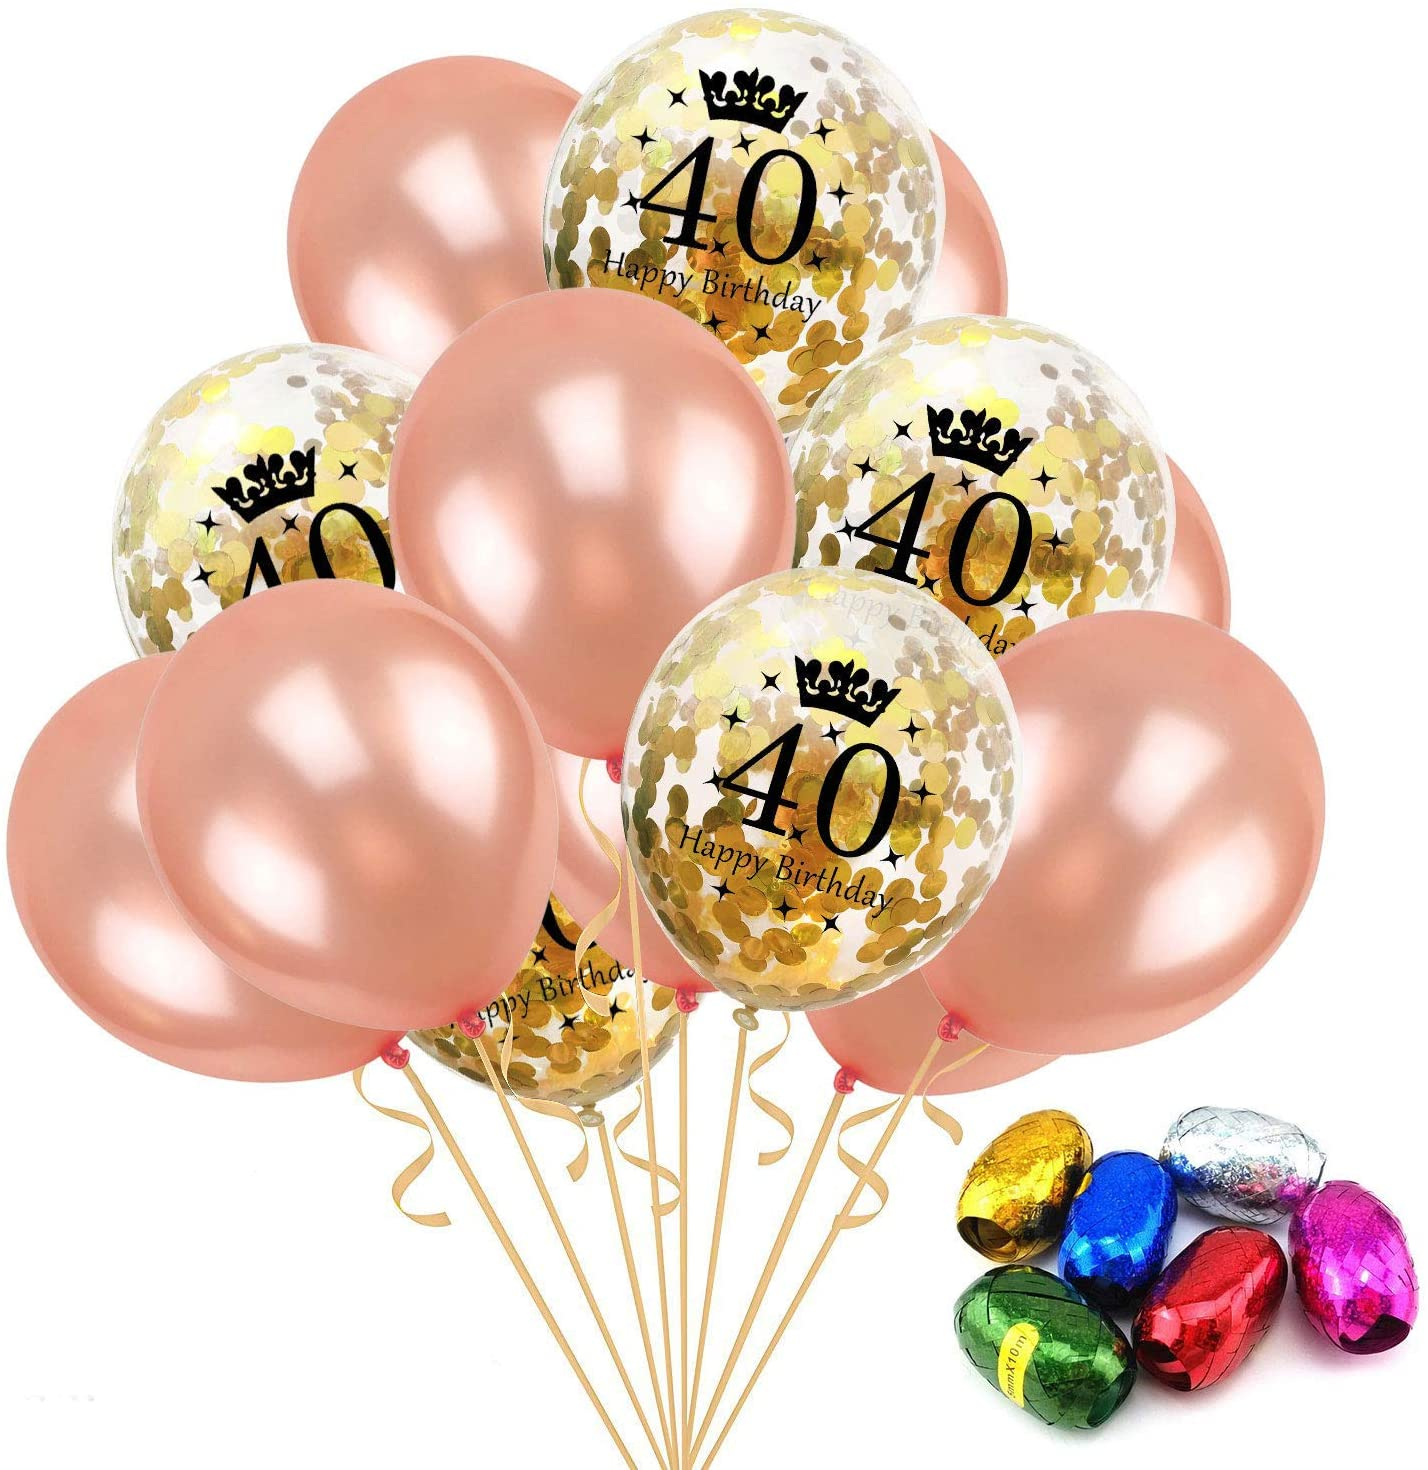 Birthday Rose Gold Balloon Package Gold 40th Number Confetti Balloons for Big Day Wedding Anniversary Party